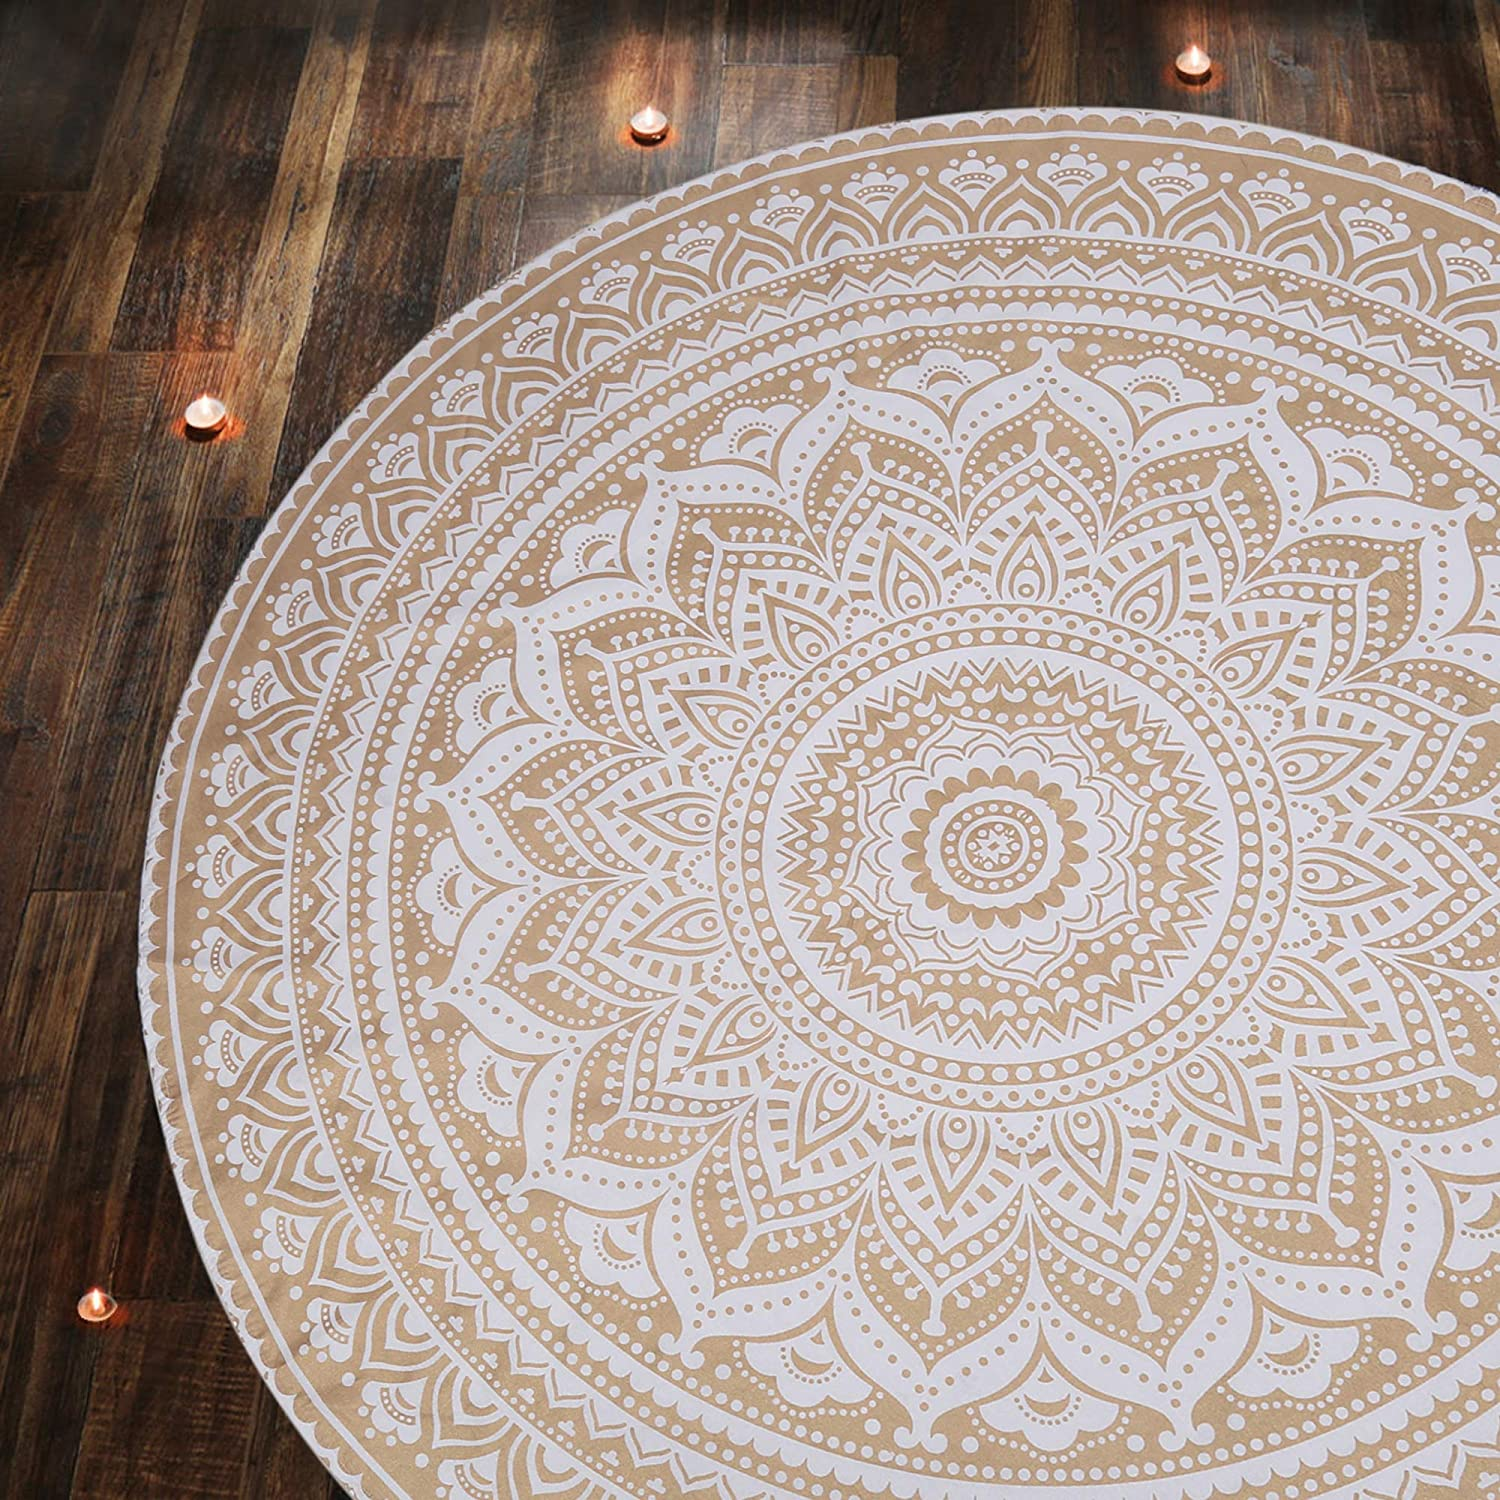 Hippie Mandala Tapiz Tapestries Cotton Bedding Bohemian Boho Beach Drom Room Decor Decorative Bedspread Wandteppich Tablecloth 48 inches Round Large Round Size Golden Tapestry Wall Hanging